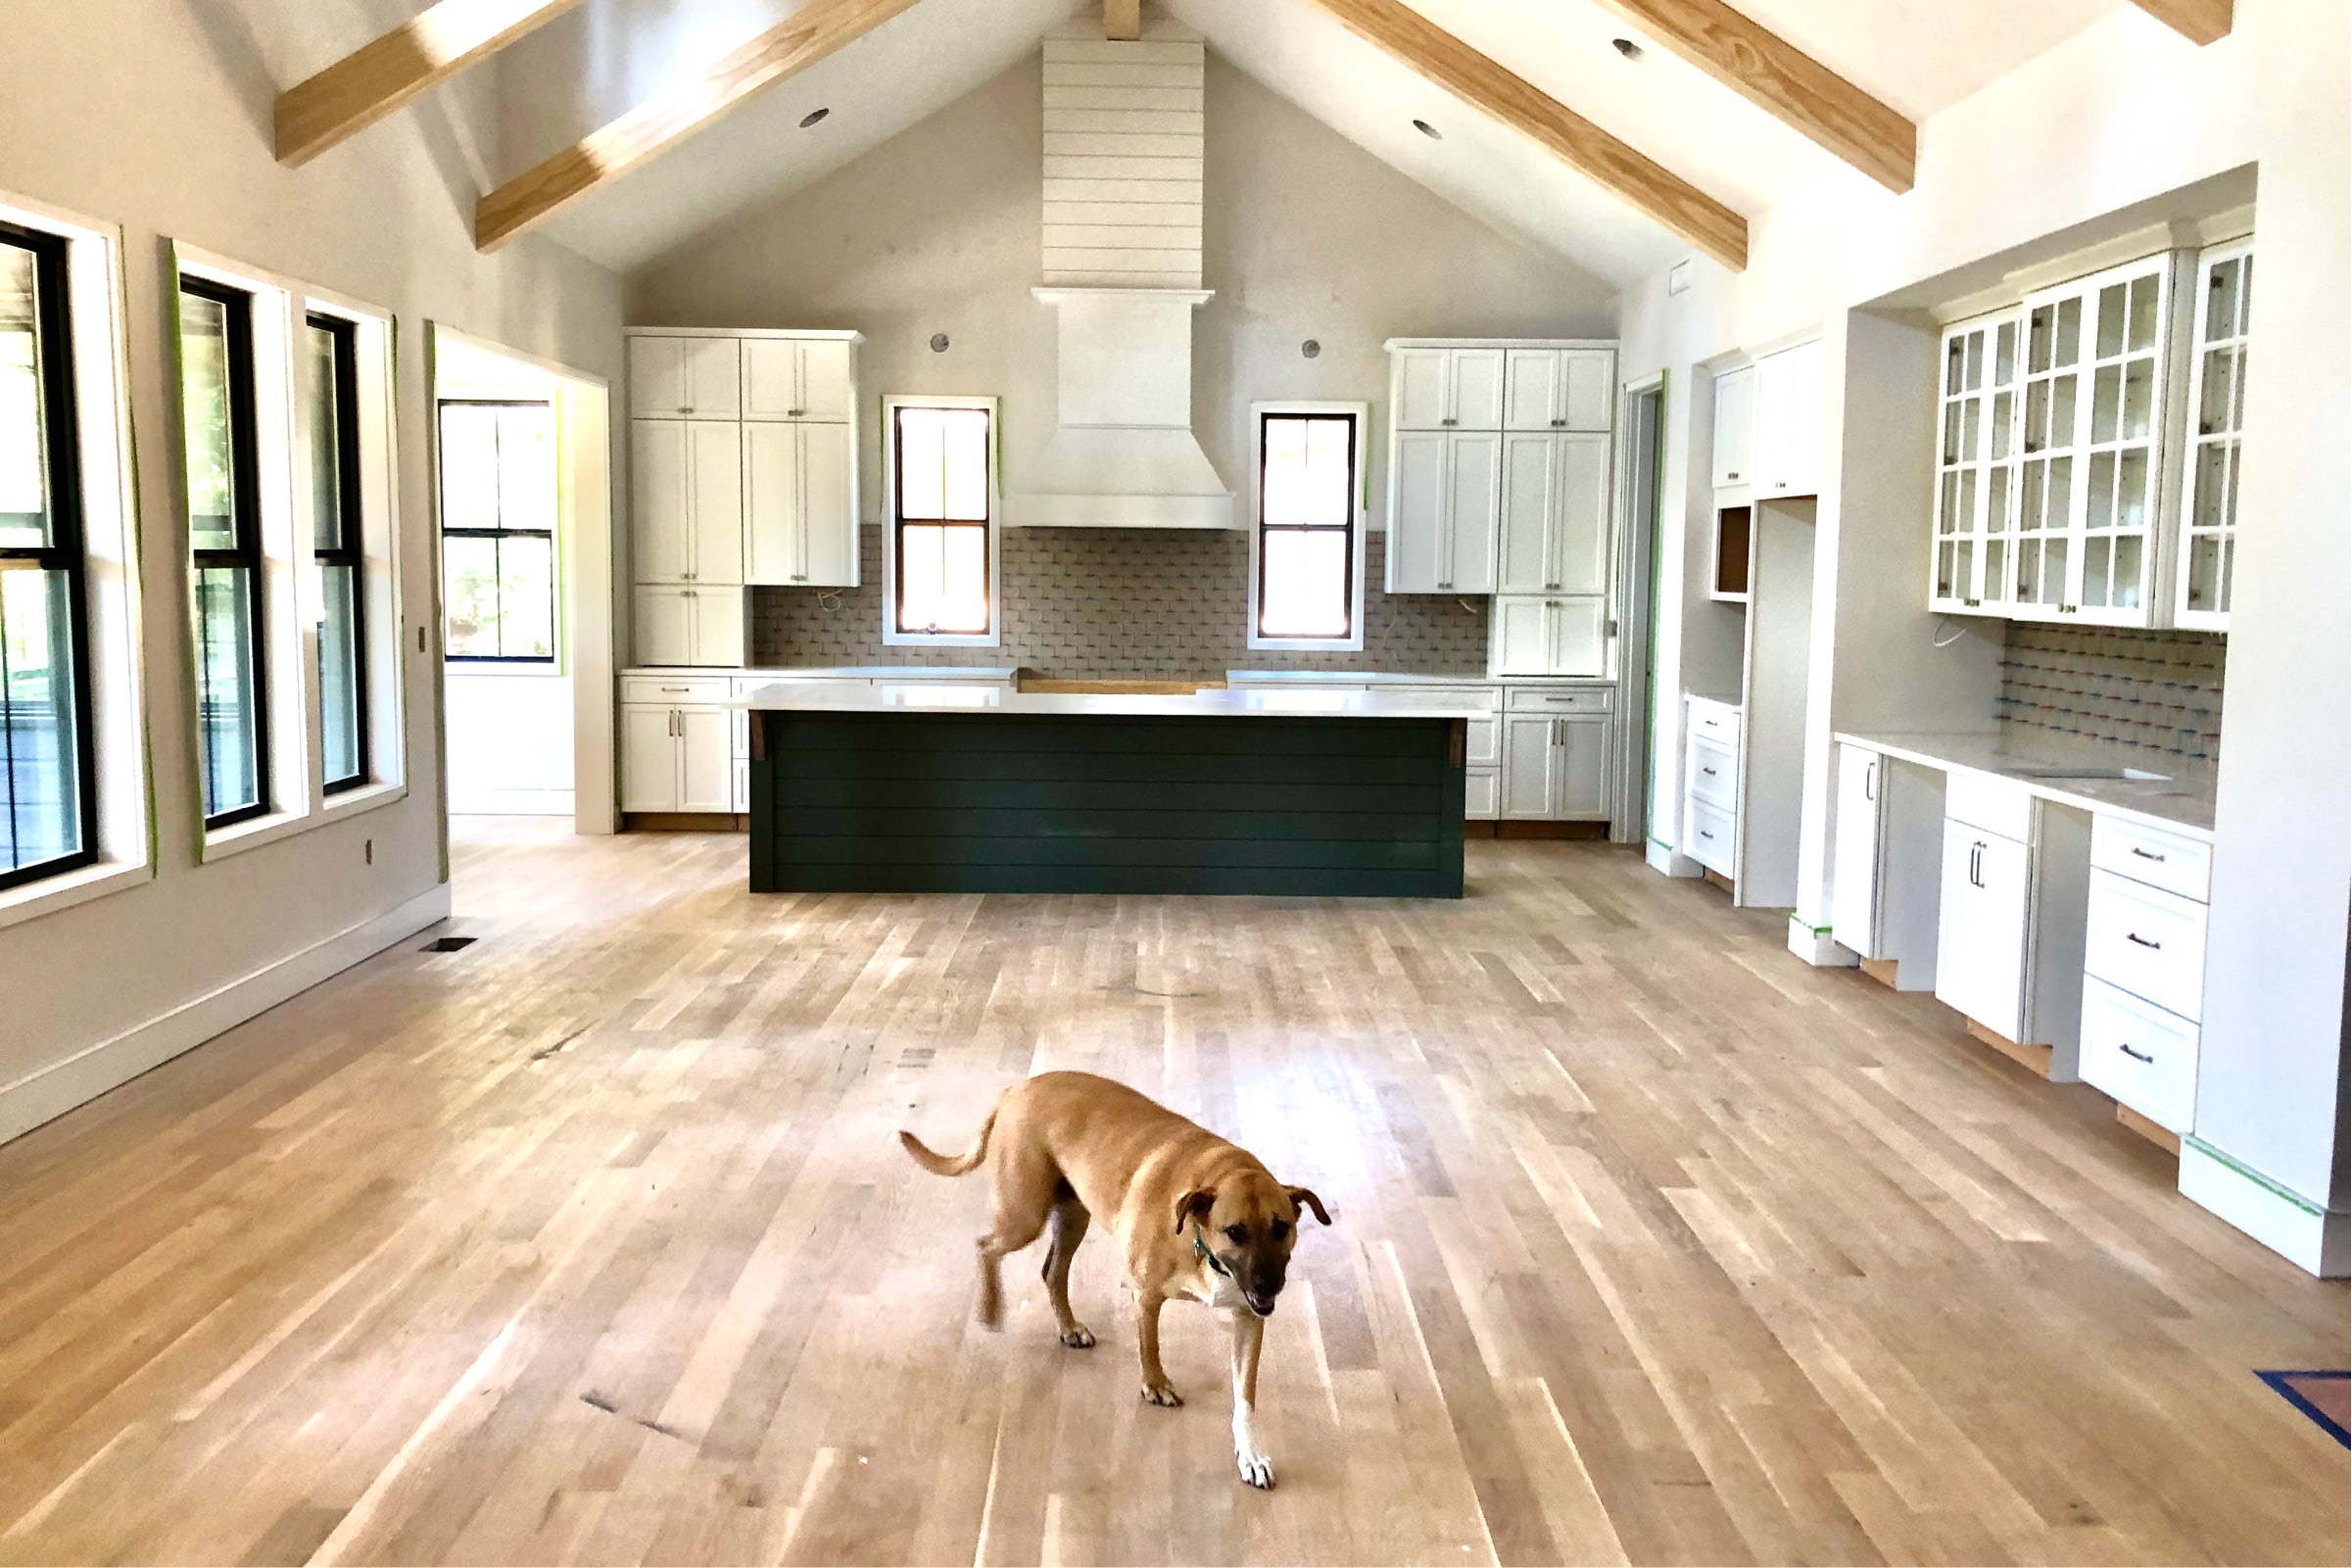 Lake Cove kitchen and dining area after build with family dog